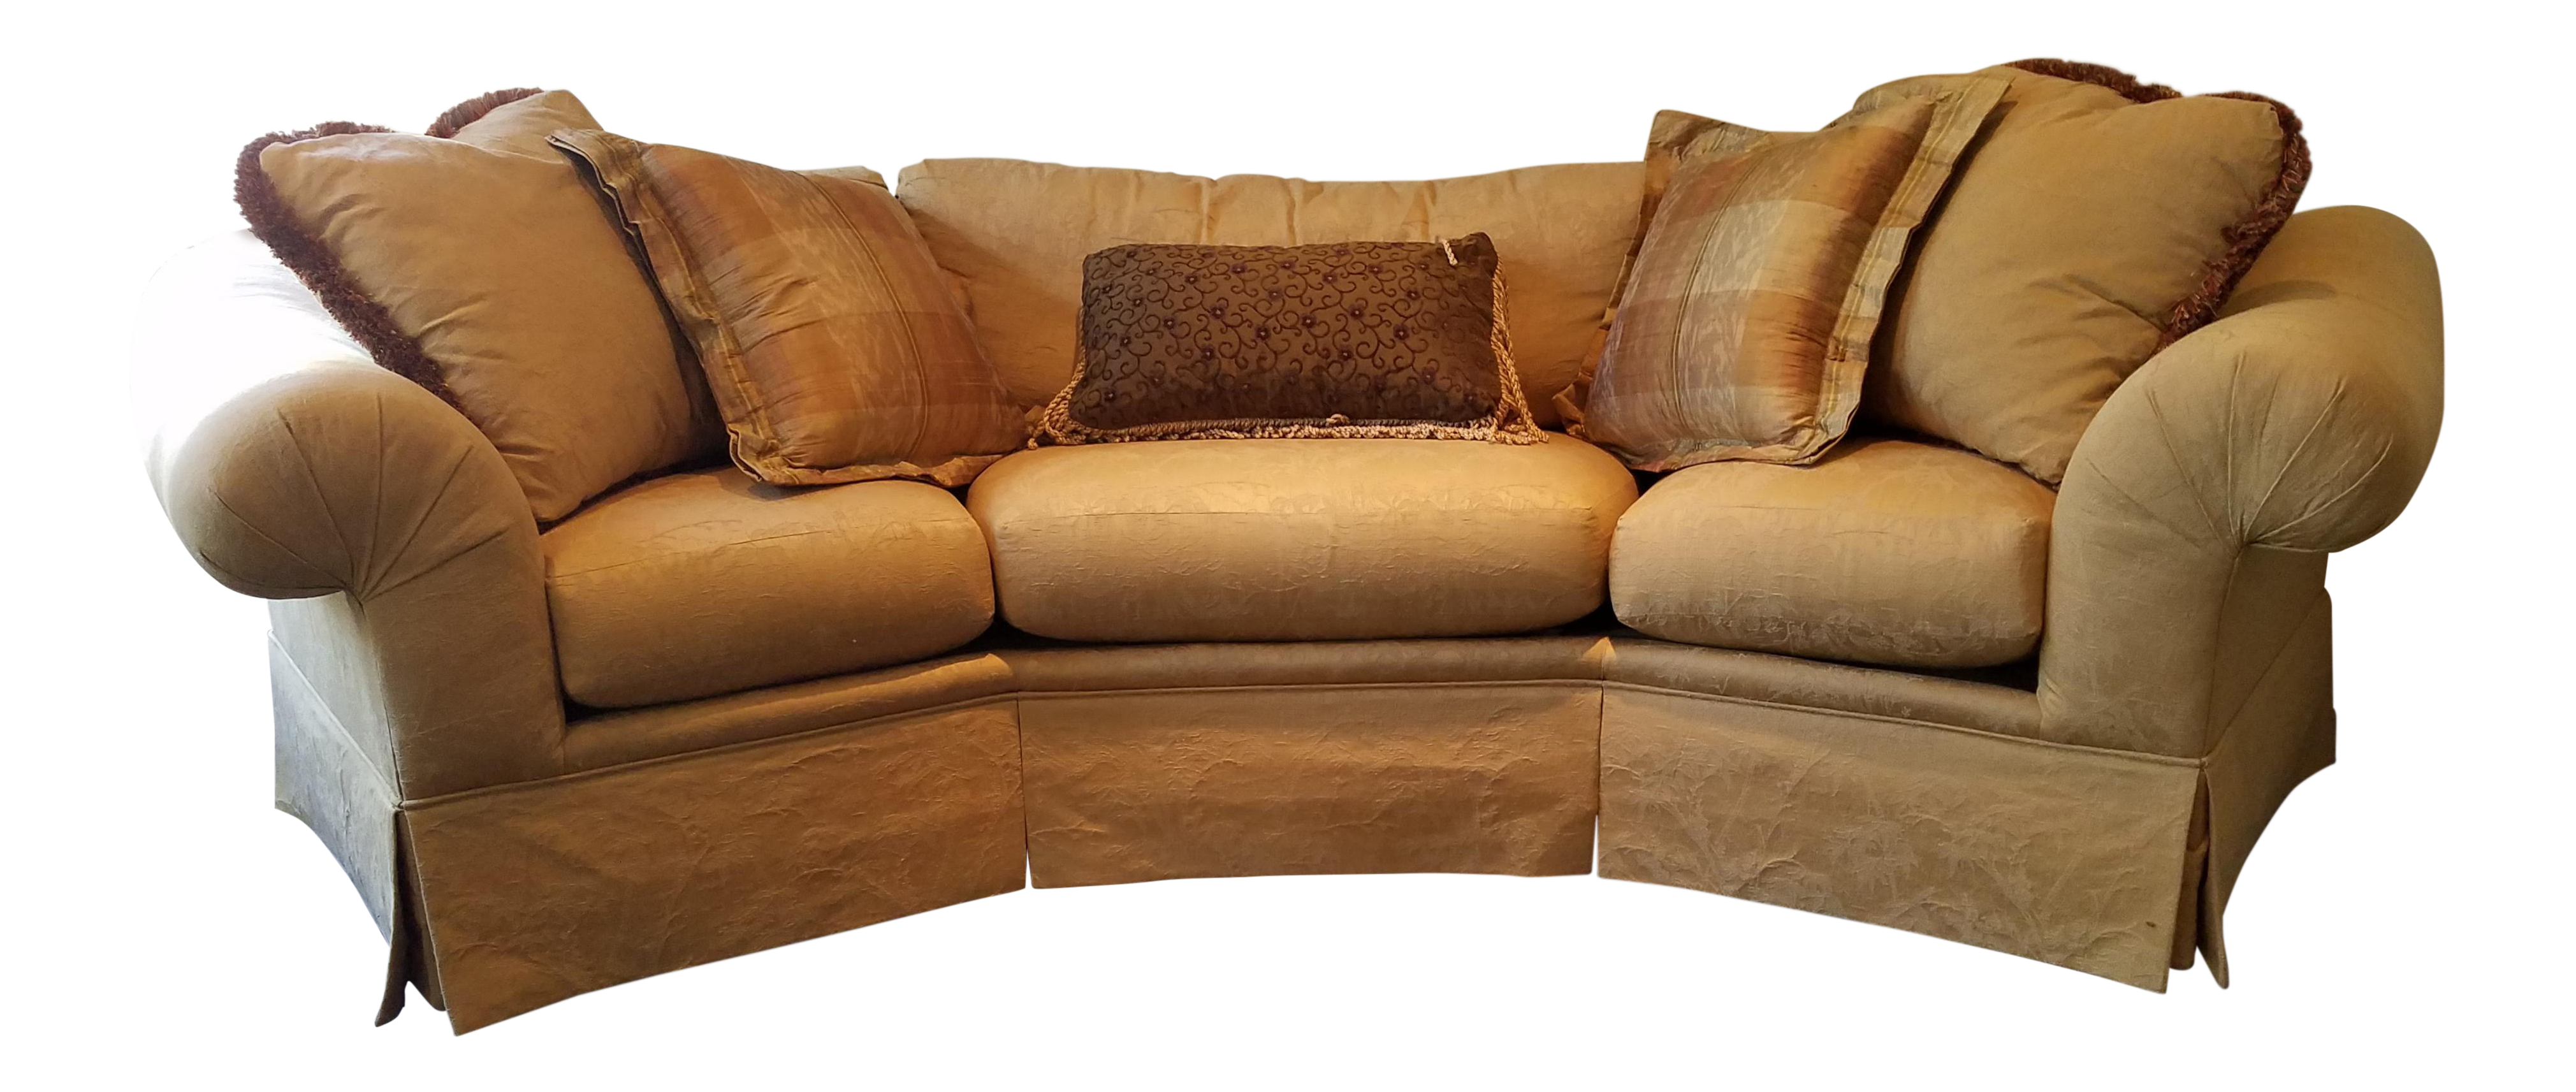 Thomasville Portofino Wedge Sofa